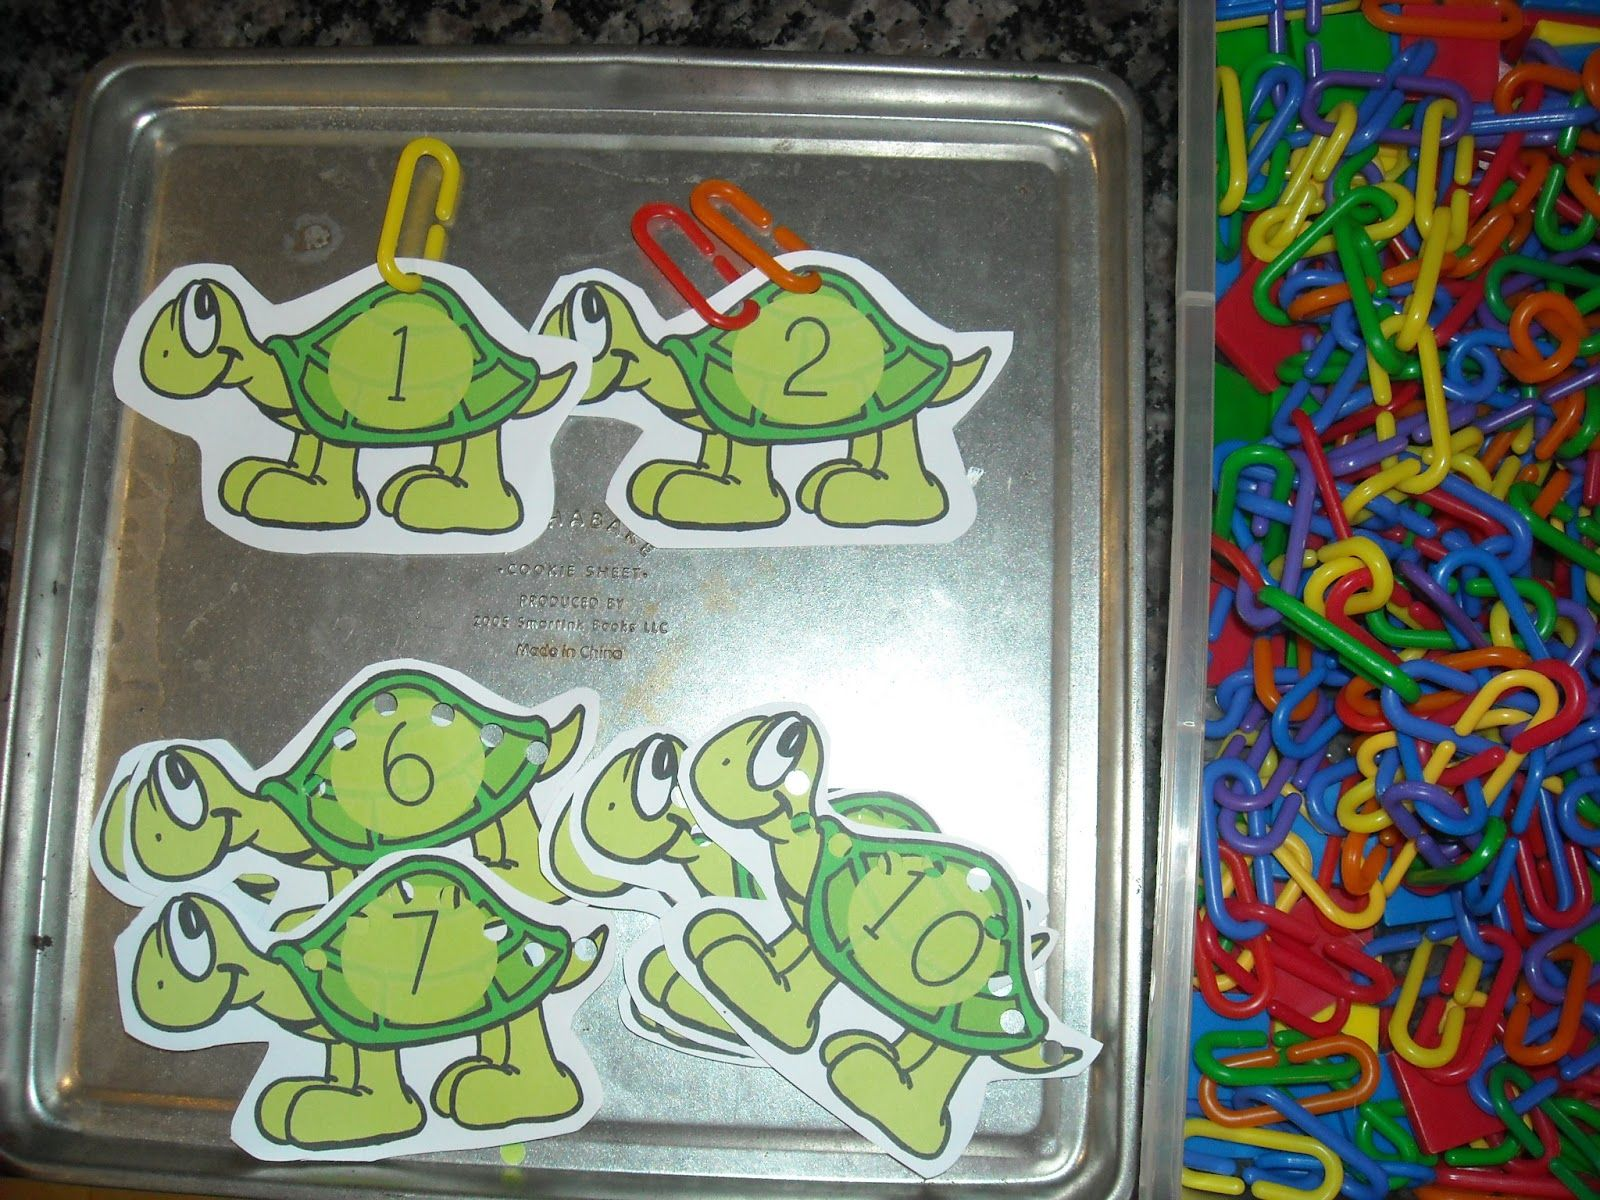 turtle activities for preschoolers | Some of our turtle ... - photo#1